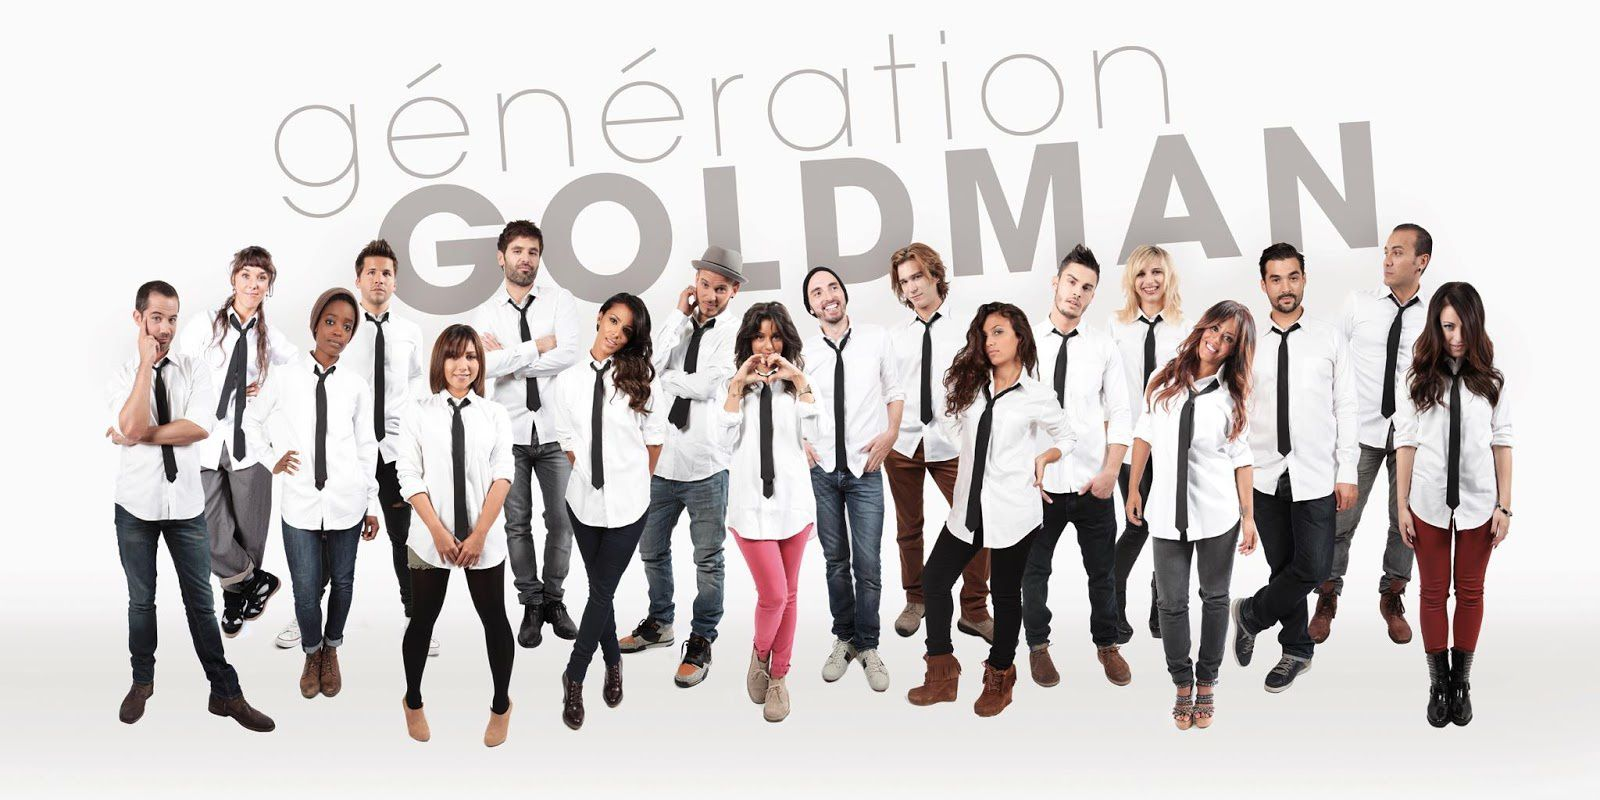 Generation Goldman (MP3 et Clips 720p) - (2013)